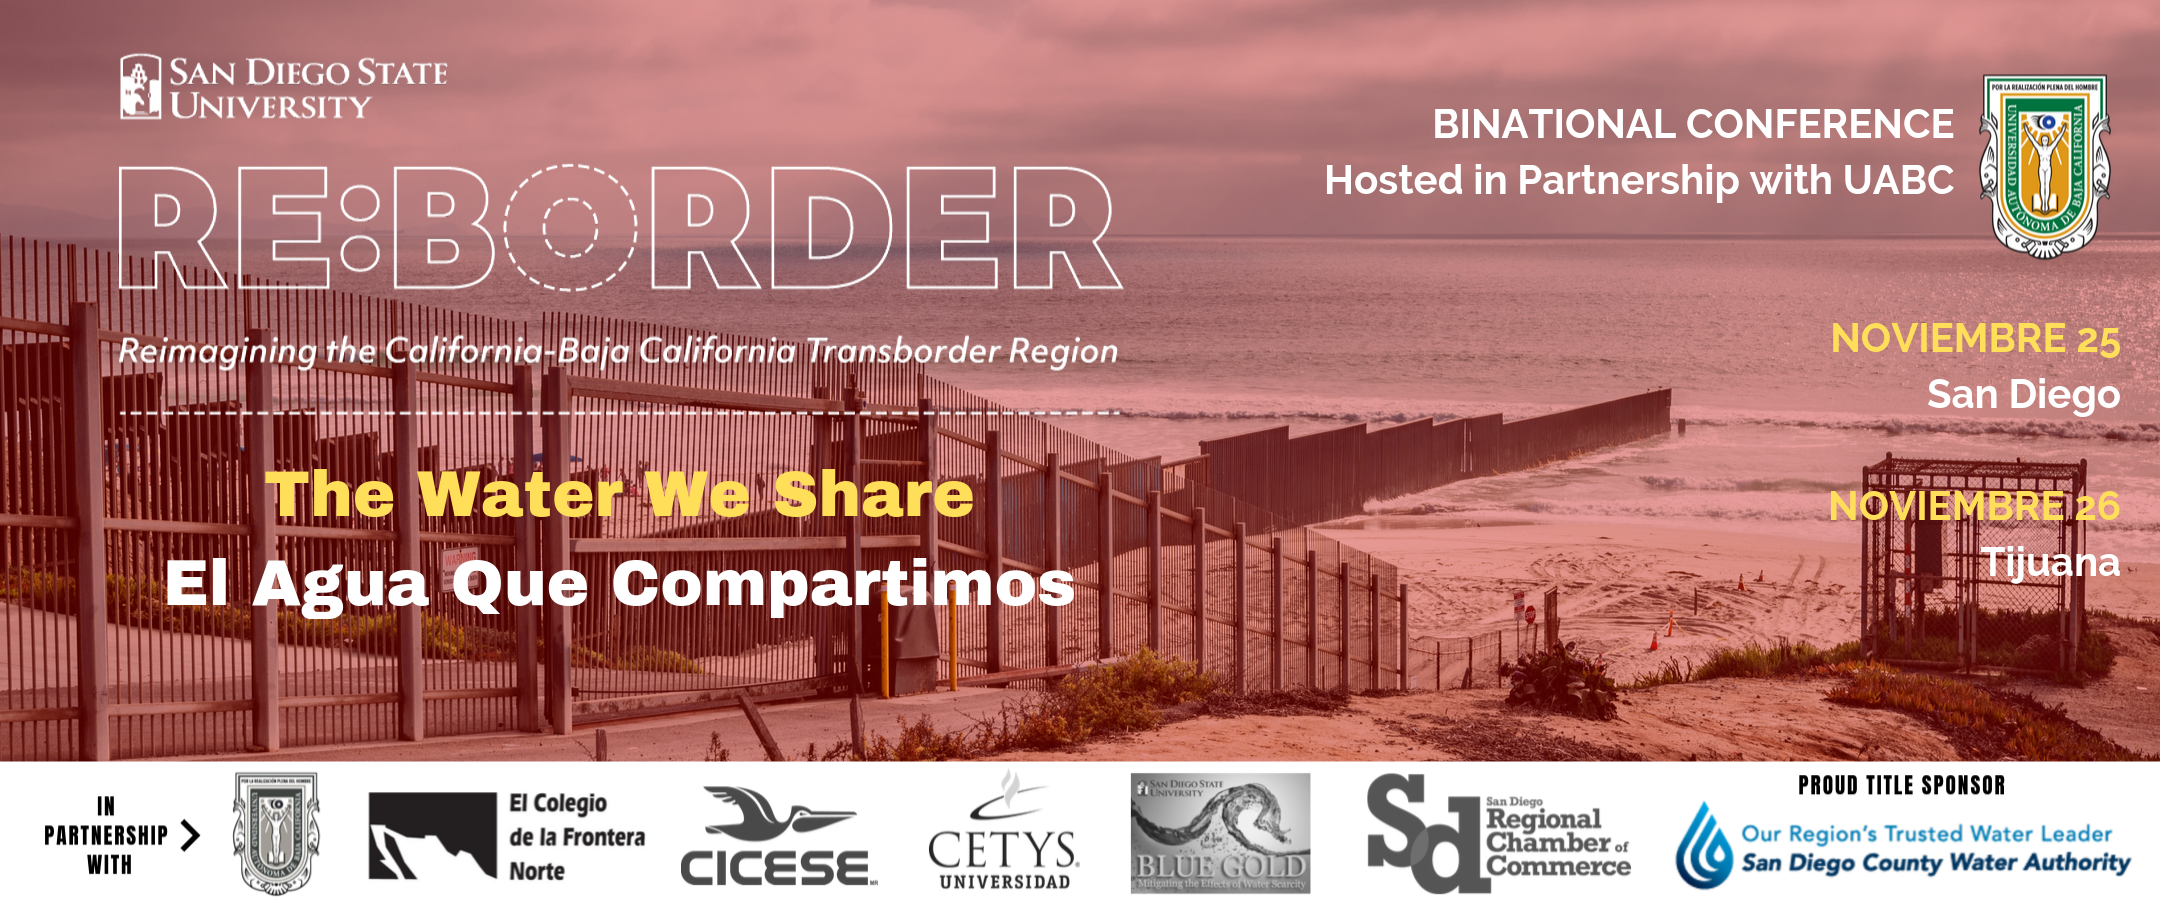 San Diego State University Presents RE:BORDER Conference: reimaging the California-Baja California Transborder Region.   Binational Conference hosted in partnership with UABC. This year's theme is The Water We Share. November 25 at SDSU / November 25th in Tijuana. To register, Text the word Region to56512.   Our Regional Parners include: UABC, El COLEF, CICESE, CETYS, SDSU Blue Gold Group, San Diego Regional Chamber  Title Sponsor:  San Diego's County Water Authority